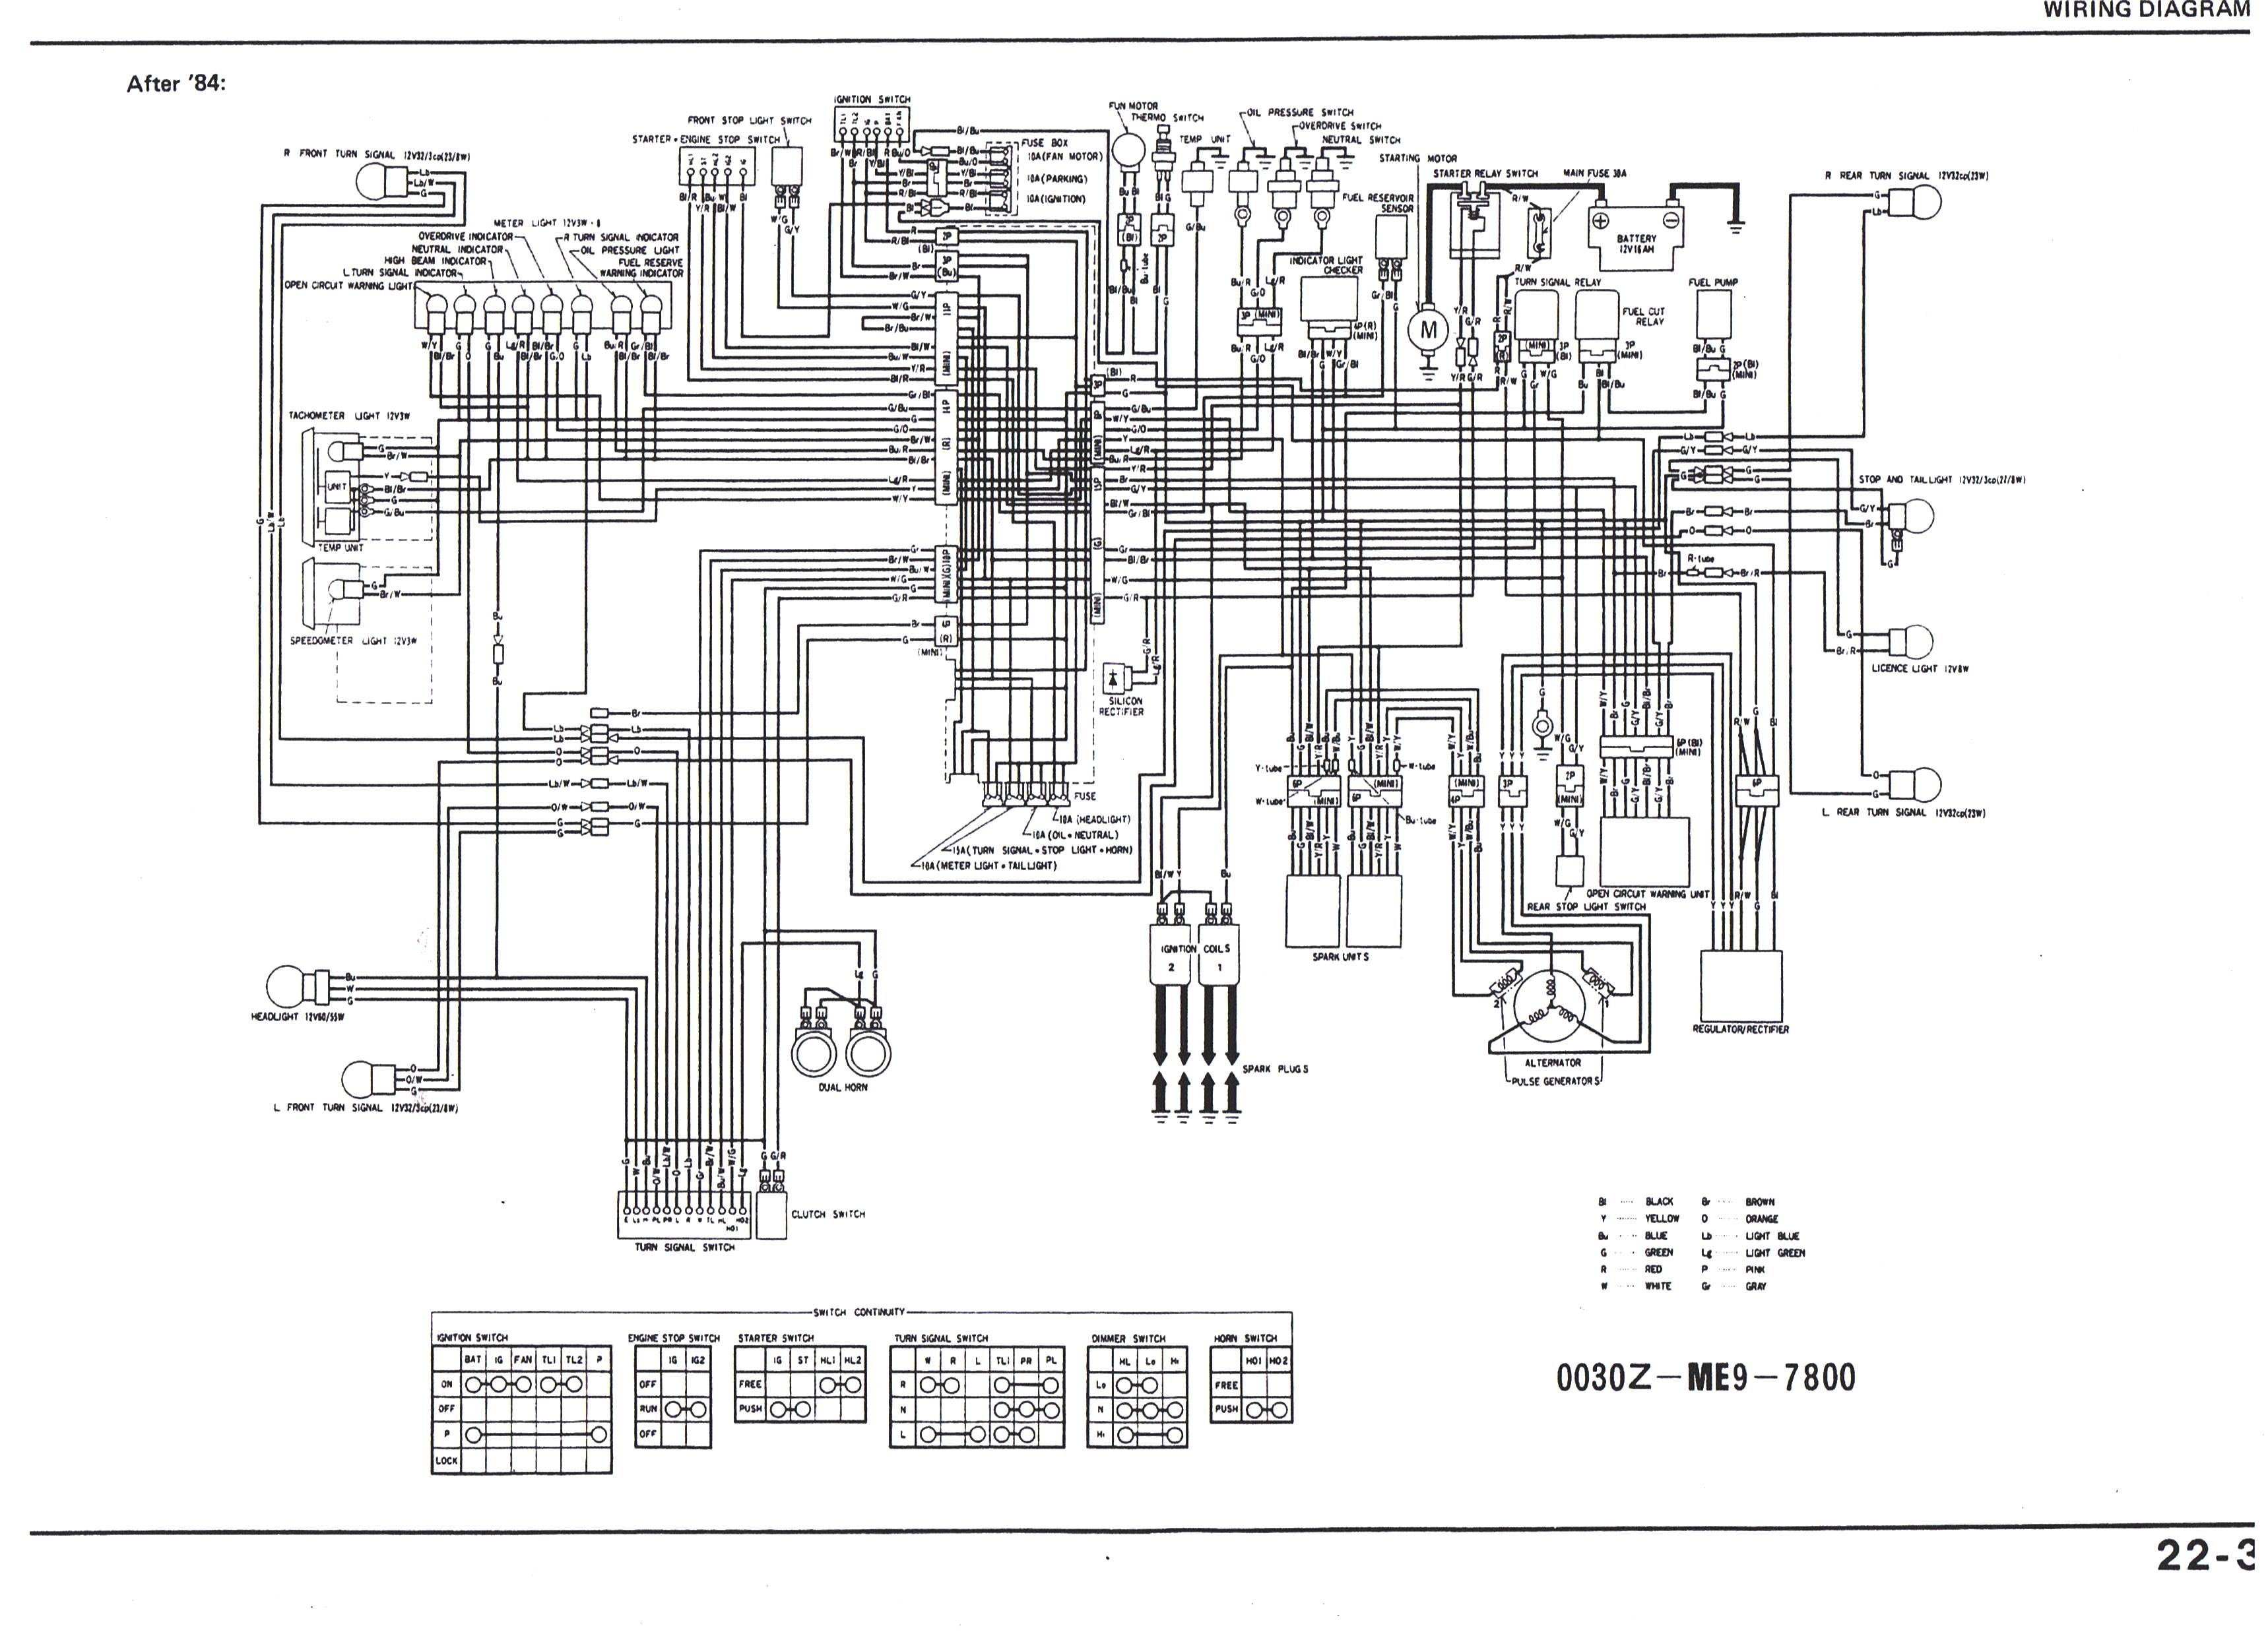 e36 amplifier wiring diagram with Bmw E36 M43 Wiring Diagram on Bmw E36 M43 Wiring Diagram moreover E39  lifier Wiring Diagram also Bmw E38 Wiring Diagram Pdf likewise Bmw E36   Wiring Diagram furthermore E34 Fuel Pump Relay Location.